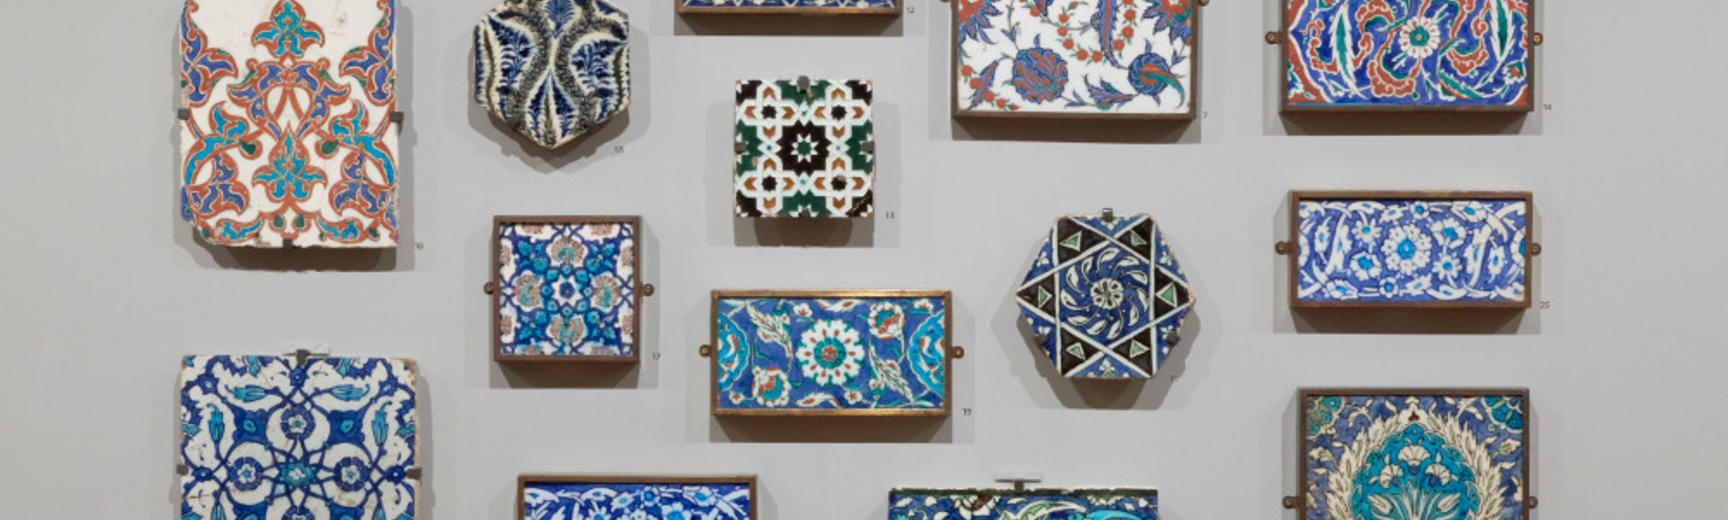 Dimensions Exhibition Tile Wall